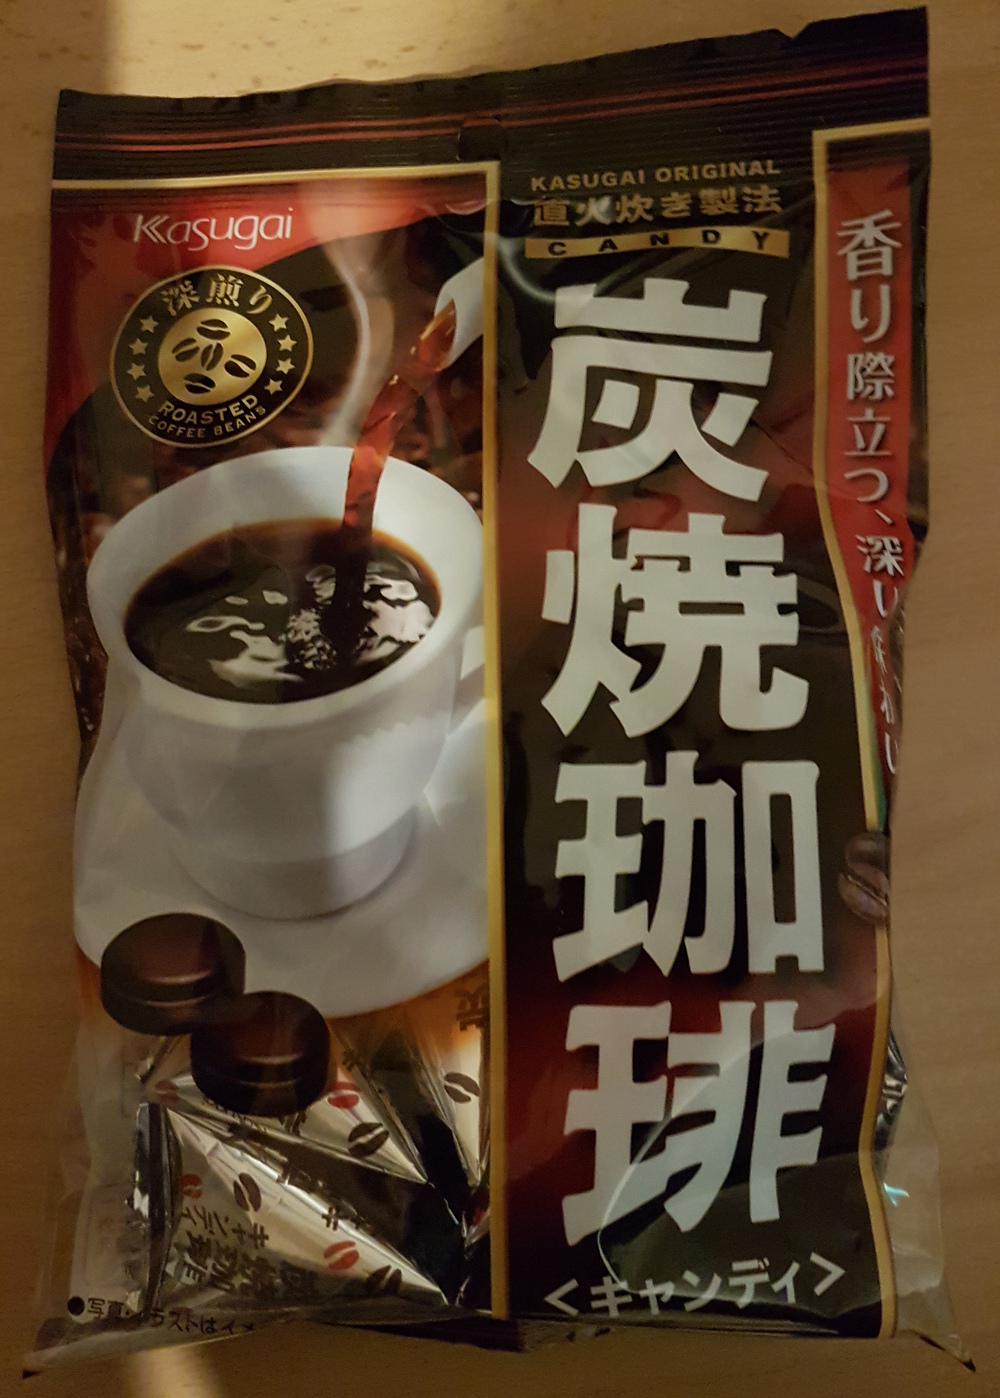 kasugai_charcoal_roasted_coffee_candy_mini